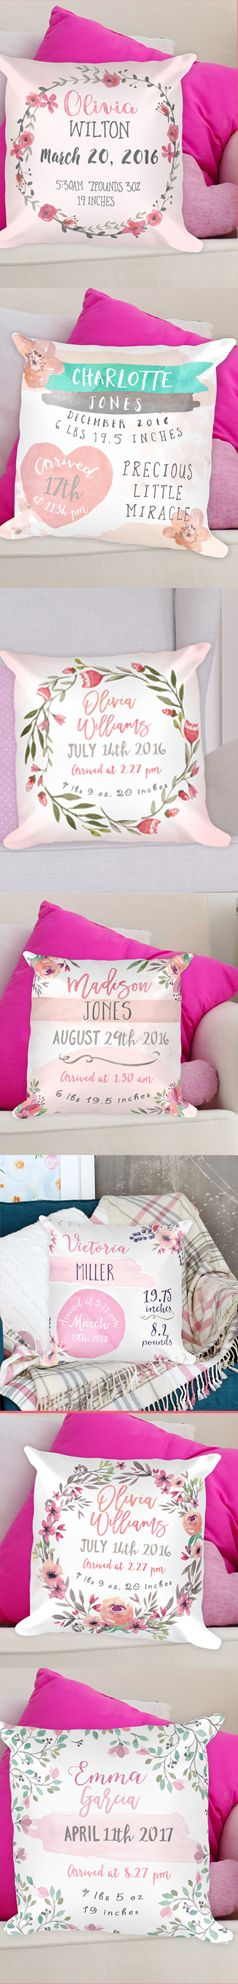 25+ best ideas about Personalised baby gifts on Pinterest ...